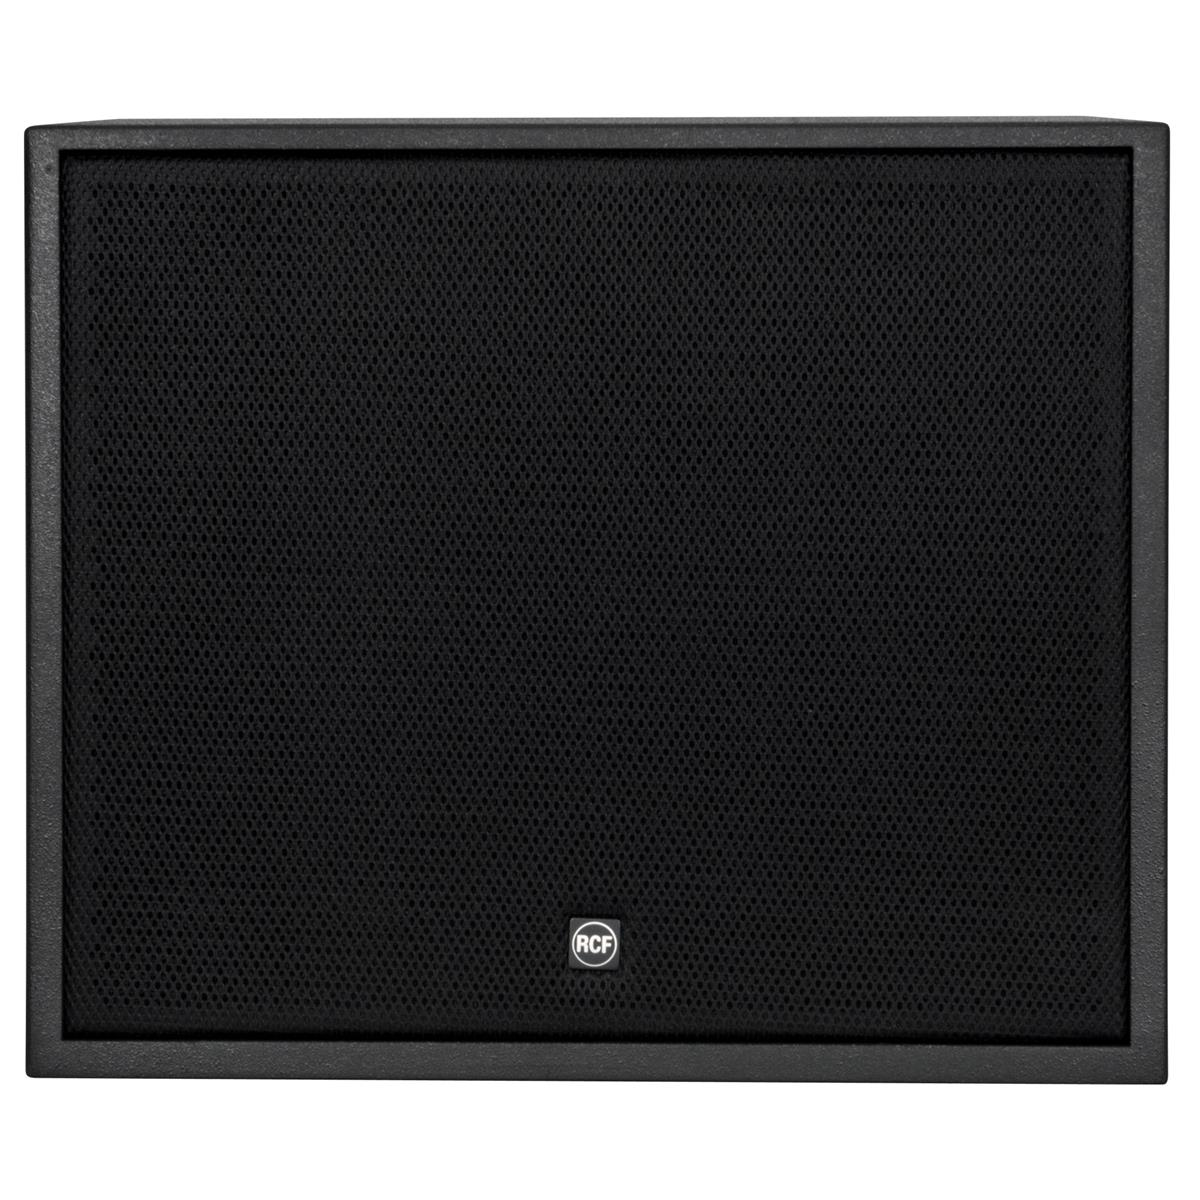 RCF S 5012 Subwoofer 1 x 12in, 300W